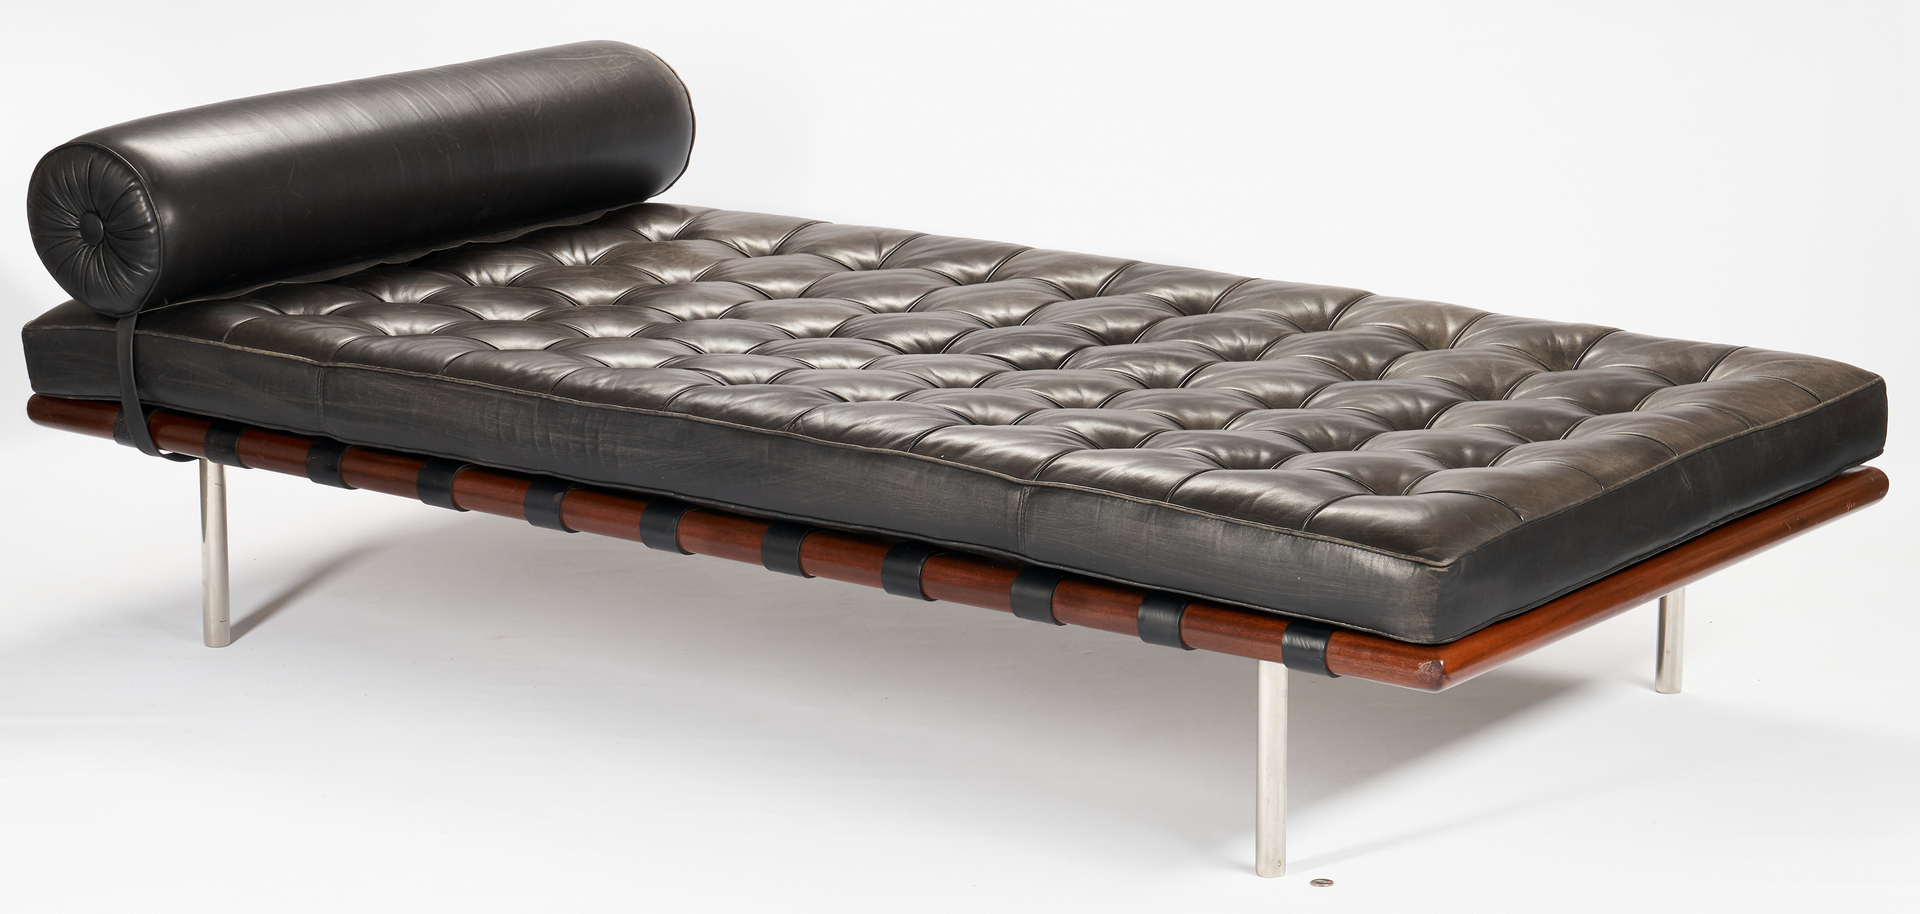 Lot 592: Knoll Barcelona Couch or Daybed